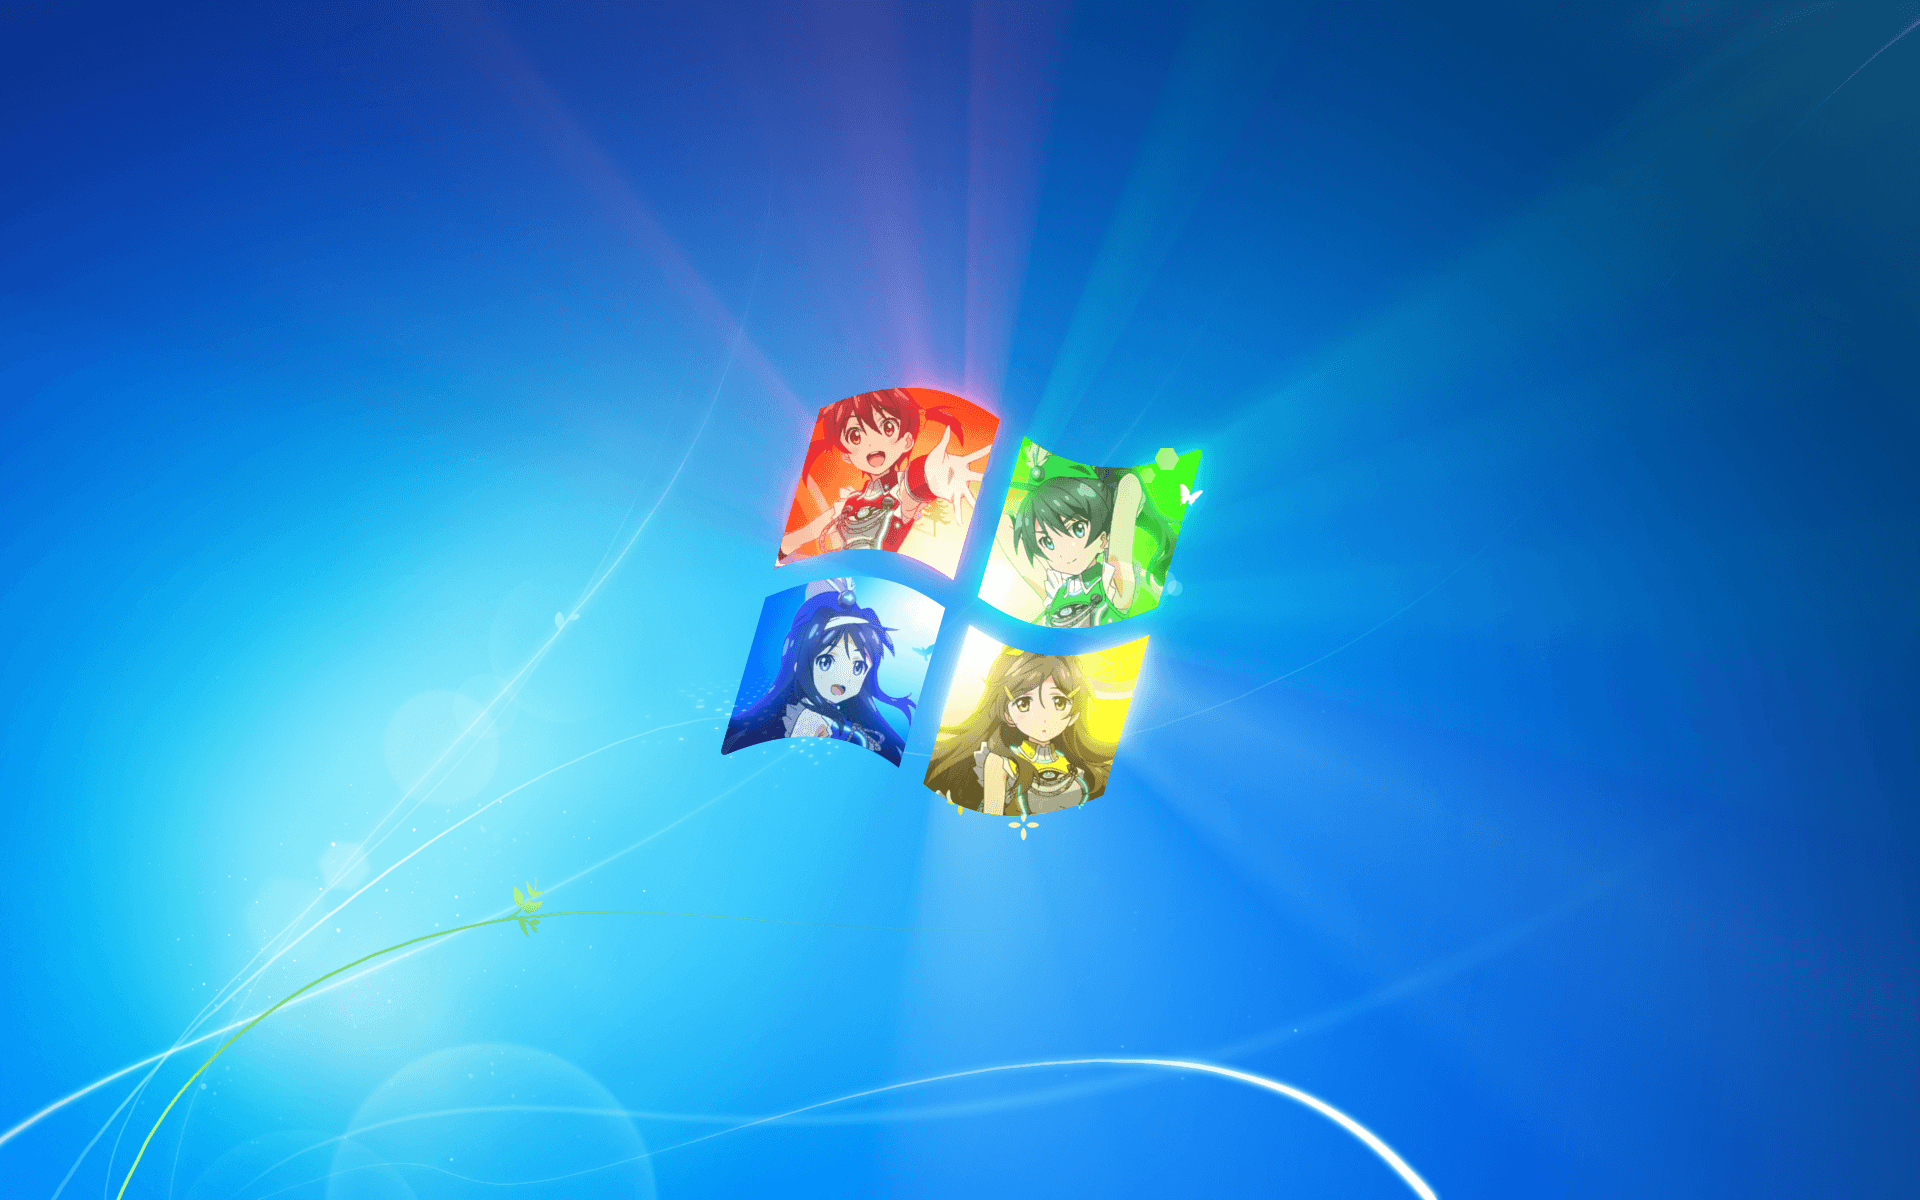 1920x1200 Windows-7-Anime-Wallpapers-Gallery-(39-Plus)-PIC-WPW4010867 ...